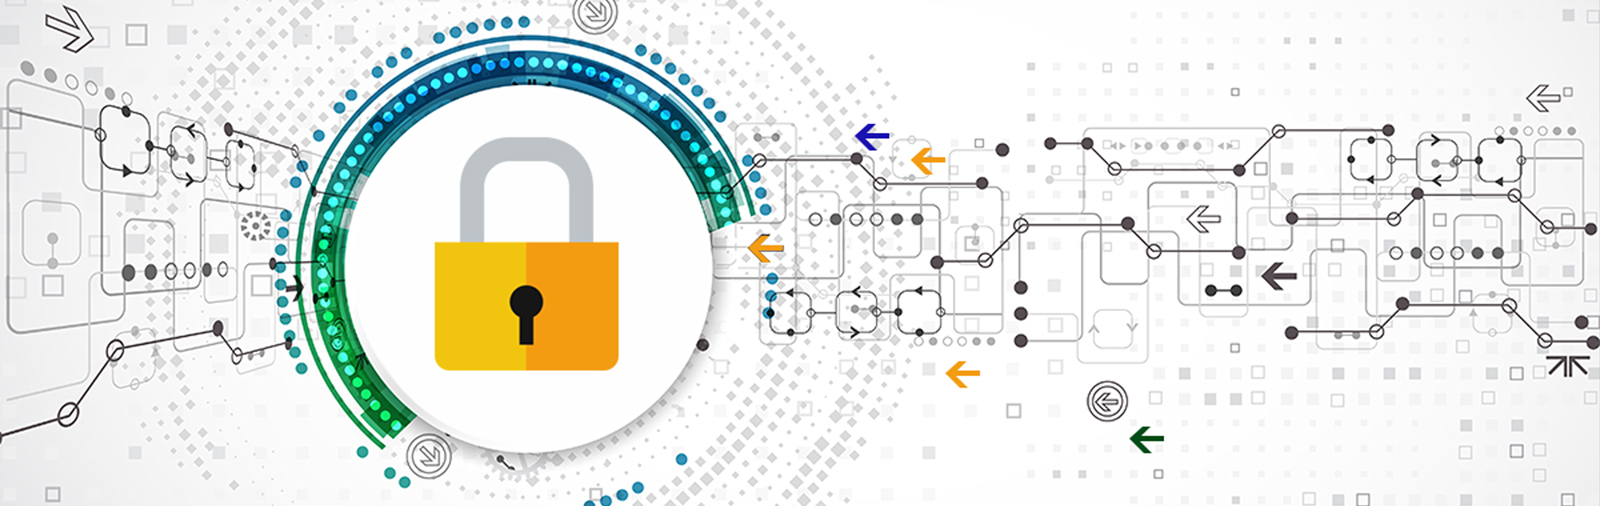 Important Cyber Security Tips That Help Keep Your Digital Assets Secure